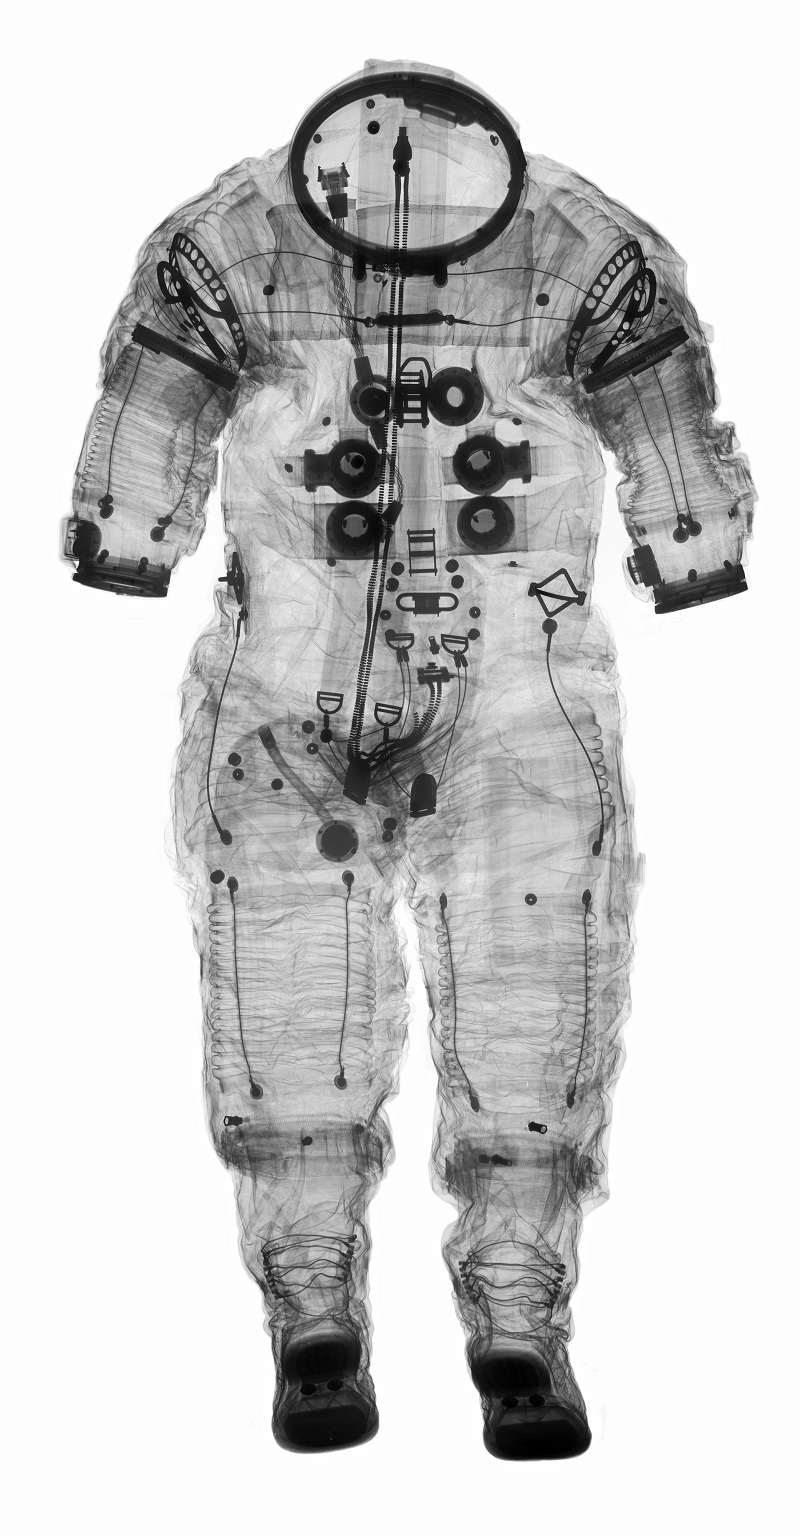 X-Rays of Space Gear - Extra-Vehicular A-7; Shepard, Alan B., Jr.; Apollo 14 Flight